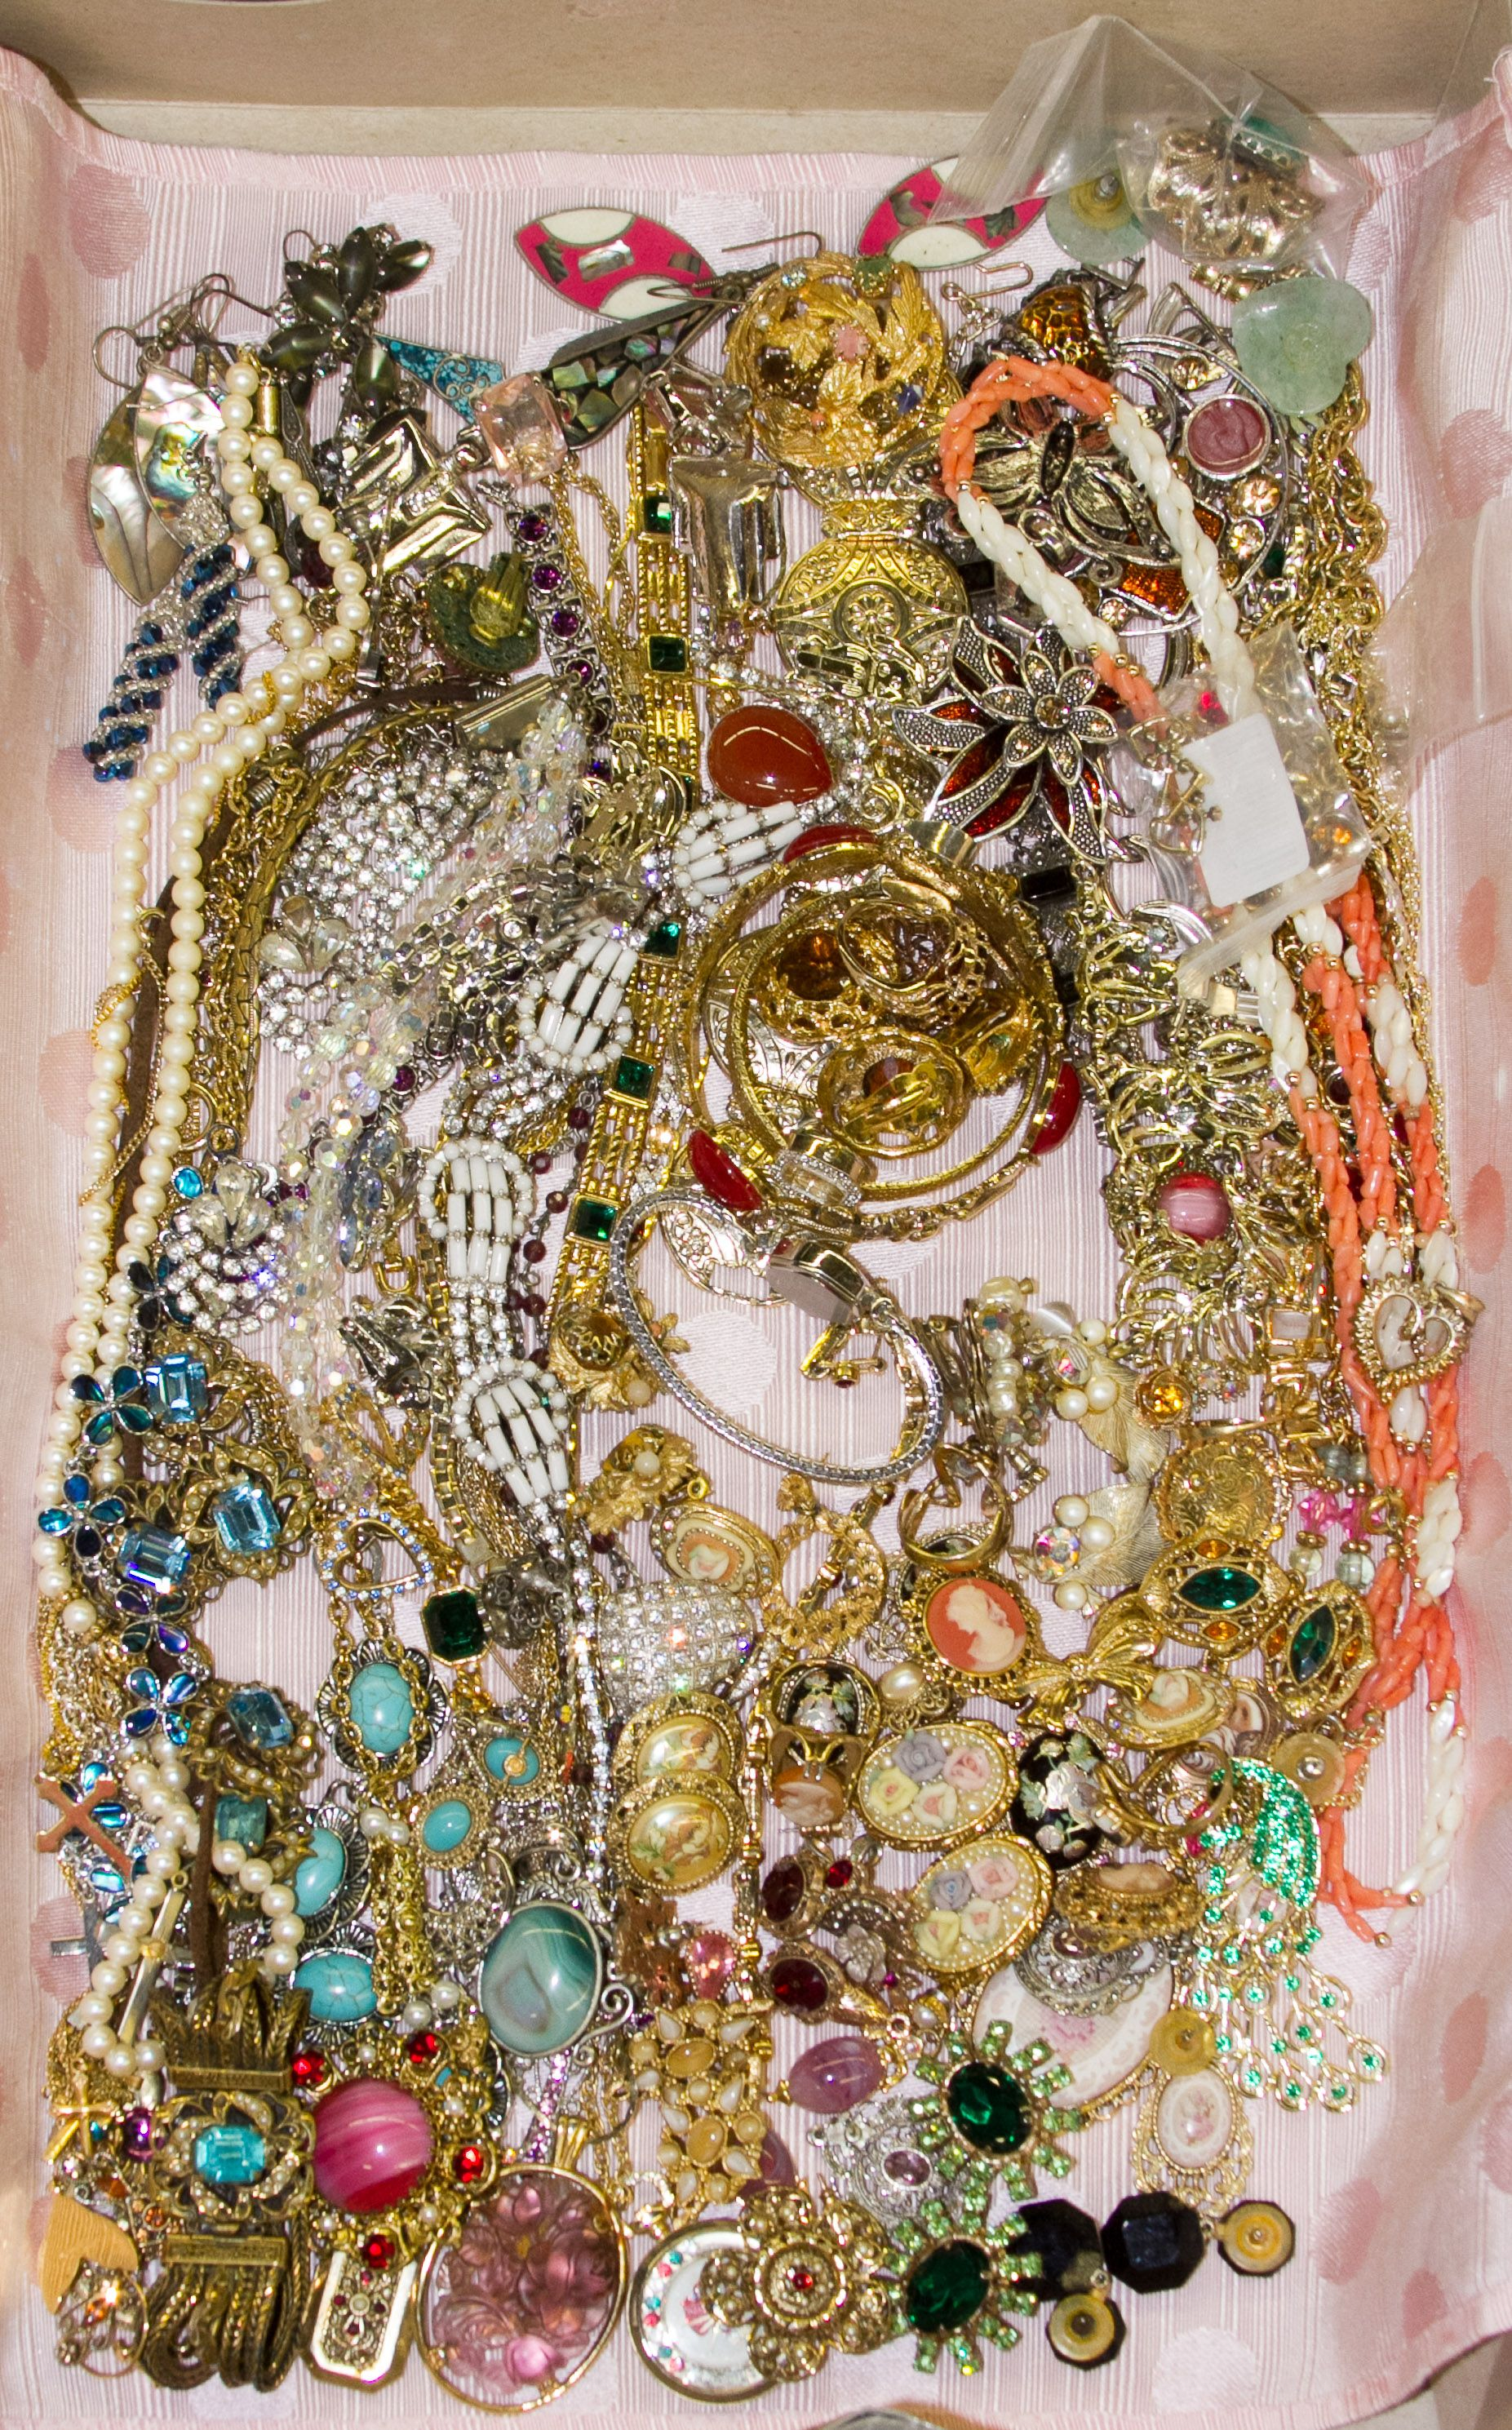 Lot 579 Rhinestone and Costume Jewelry Assortment; Including necklaces rings pins pendants earrings and watches & Lot 579: Rhinestone and Costume Jewelry Assortment; Including ...